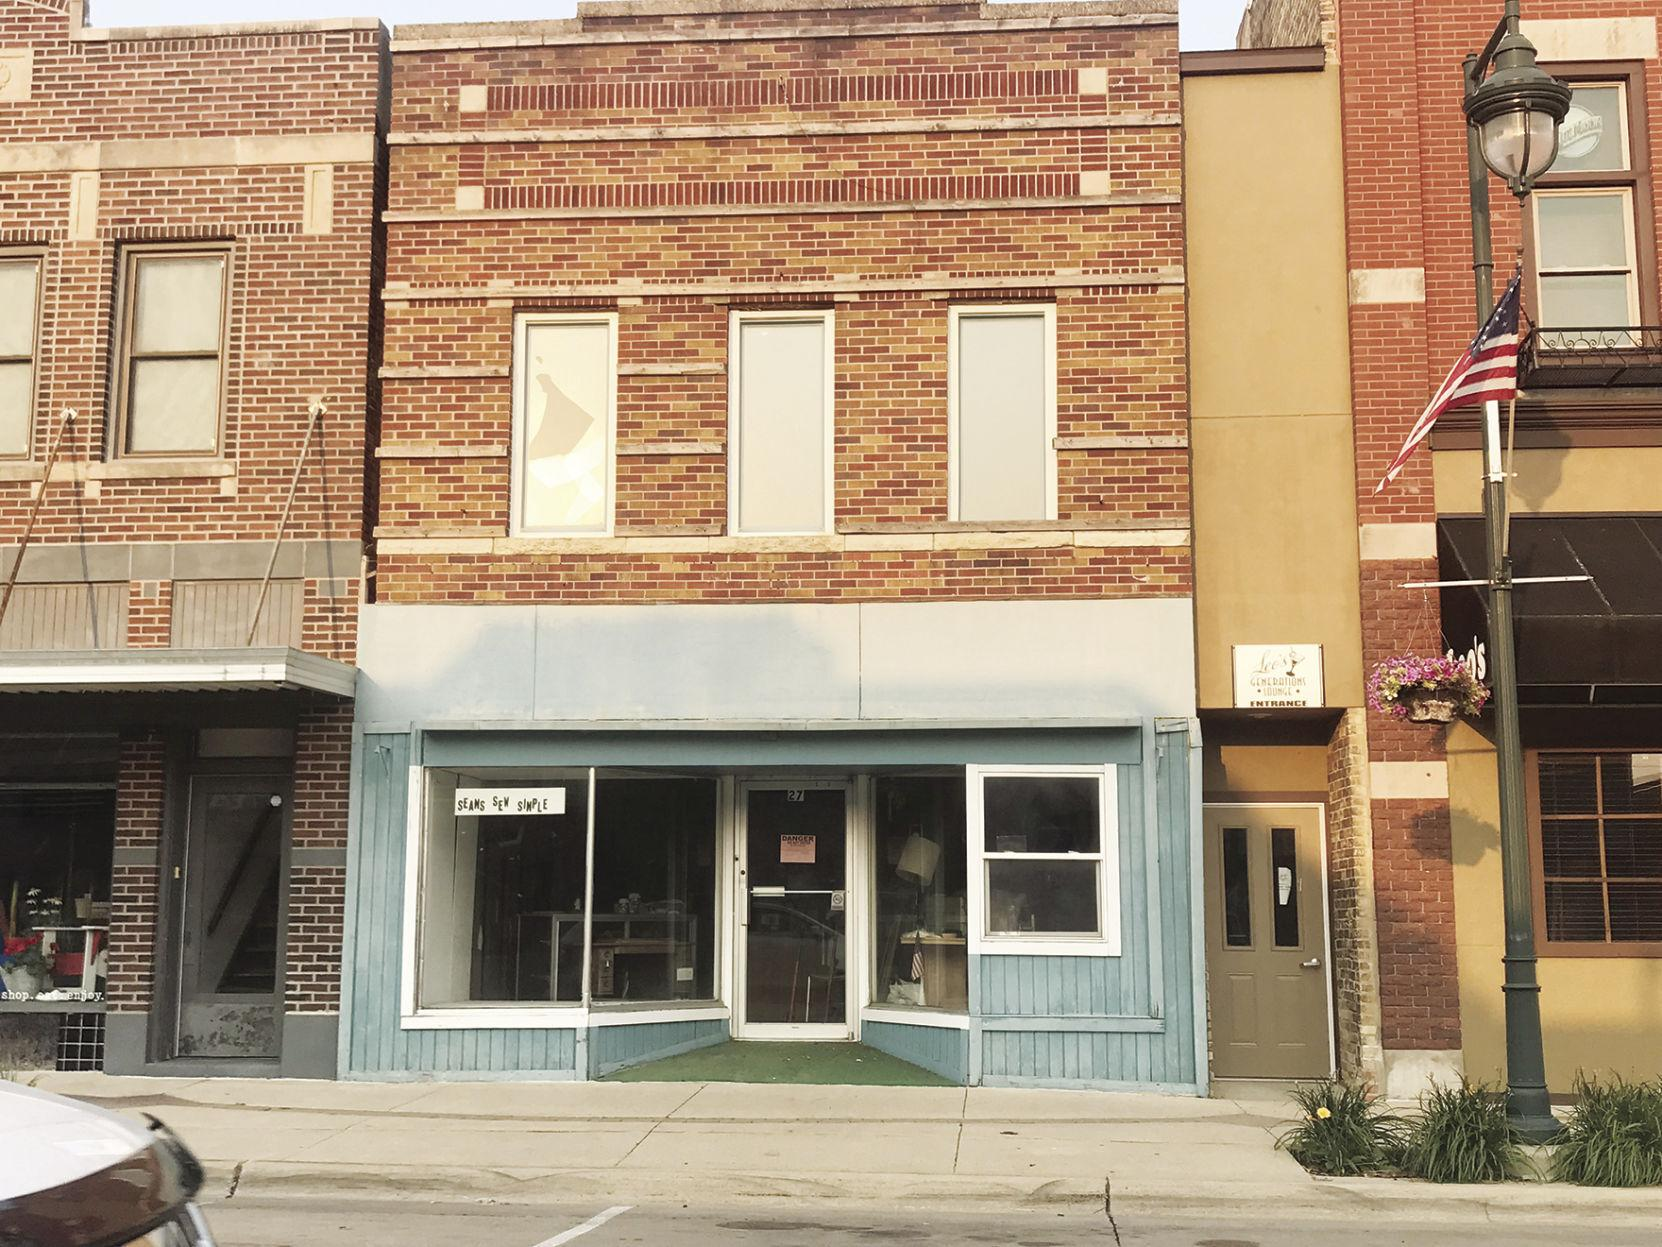 Downtown building condition sparks Council work session discussion